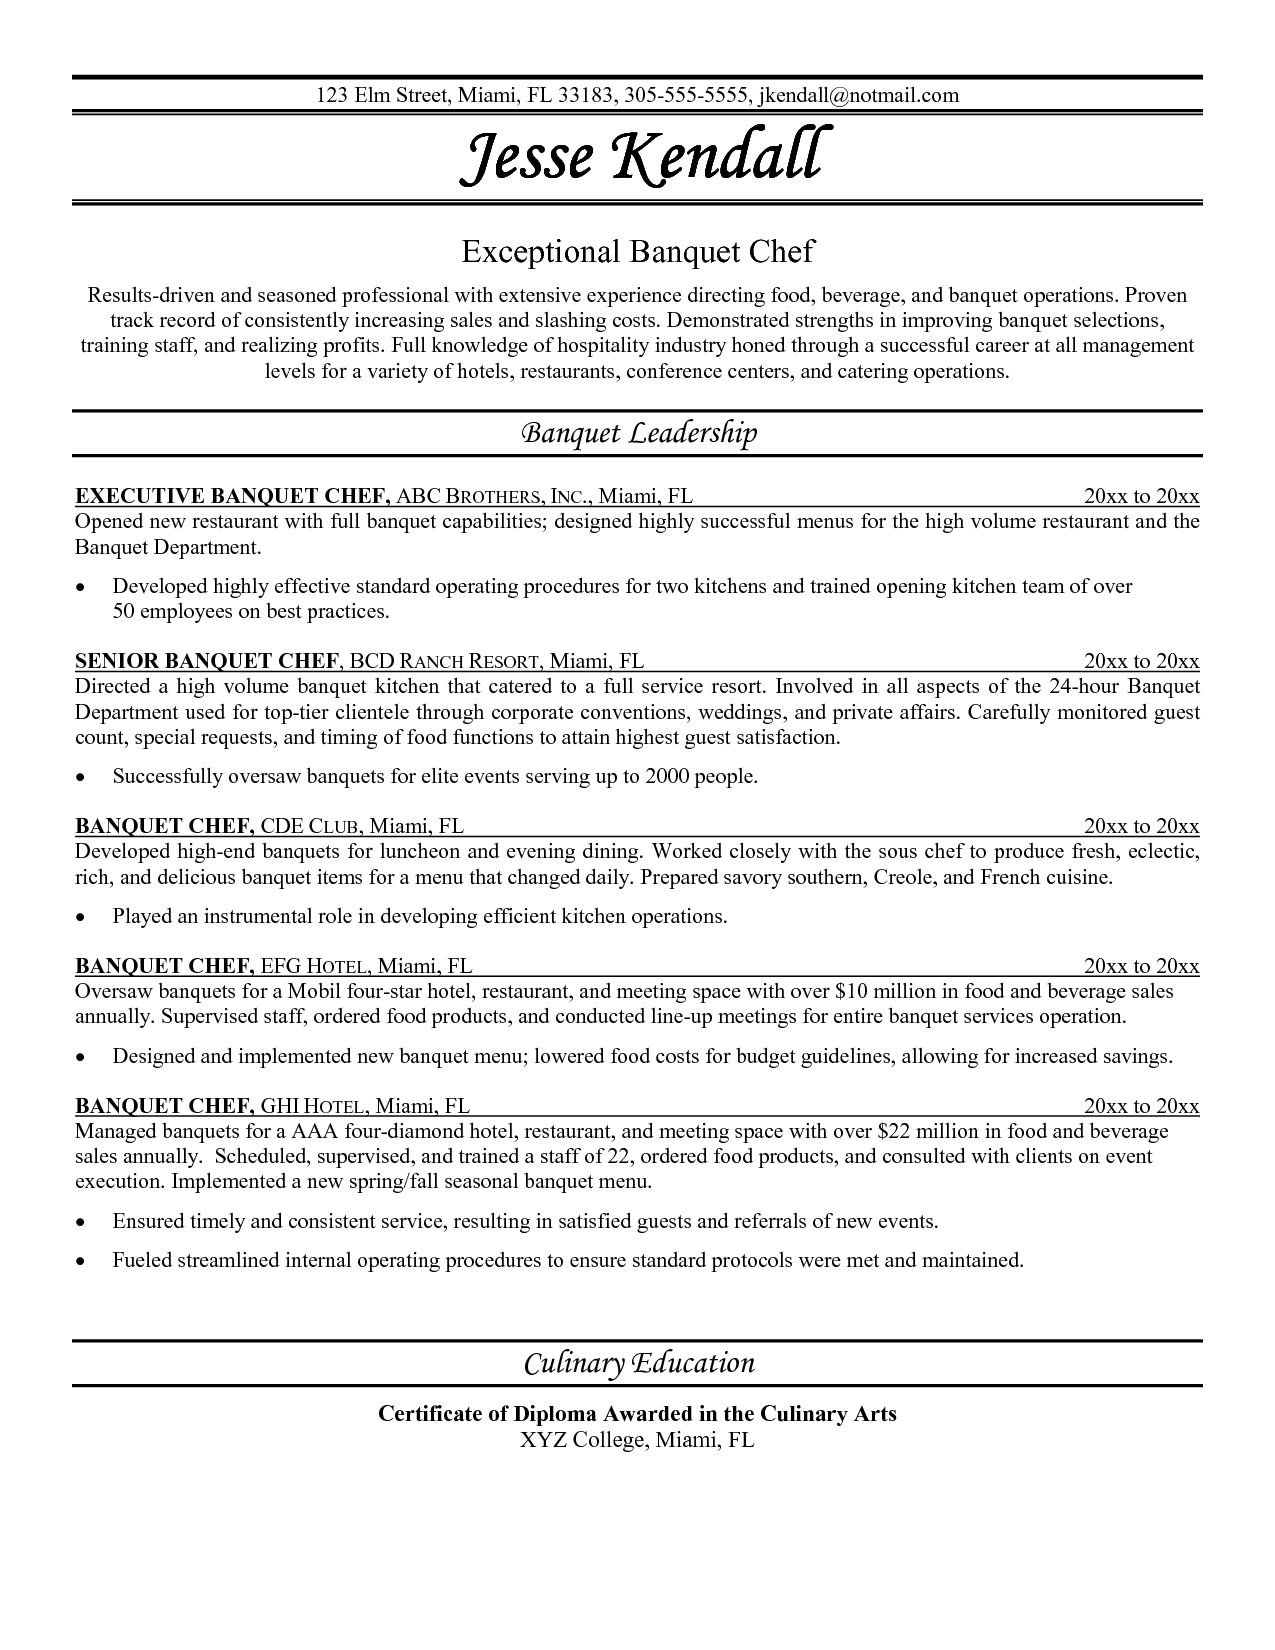 pastry chef resume sample examples sous jobs free template example ...